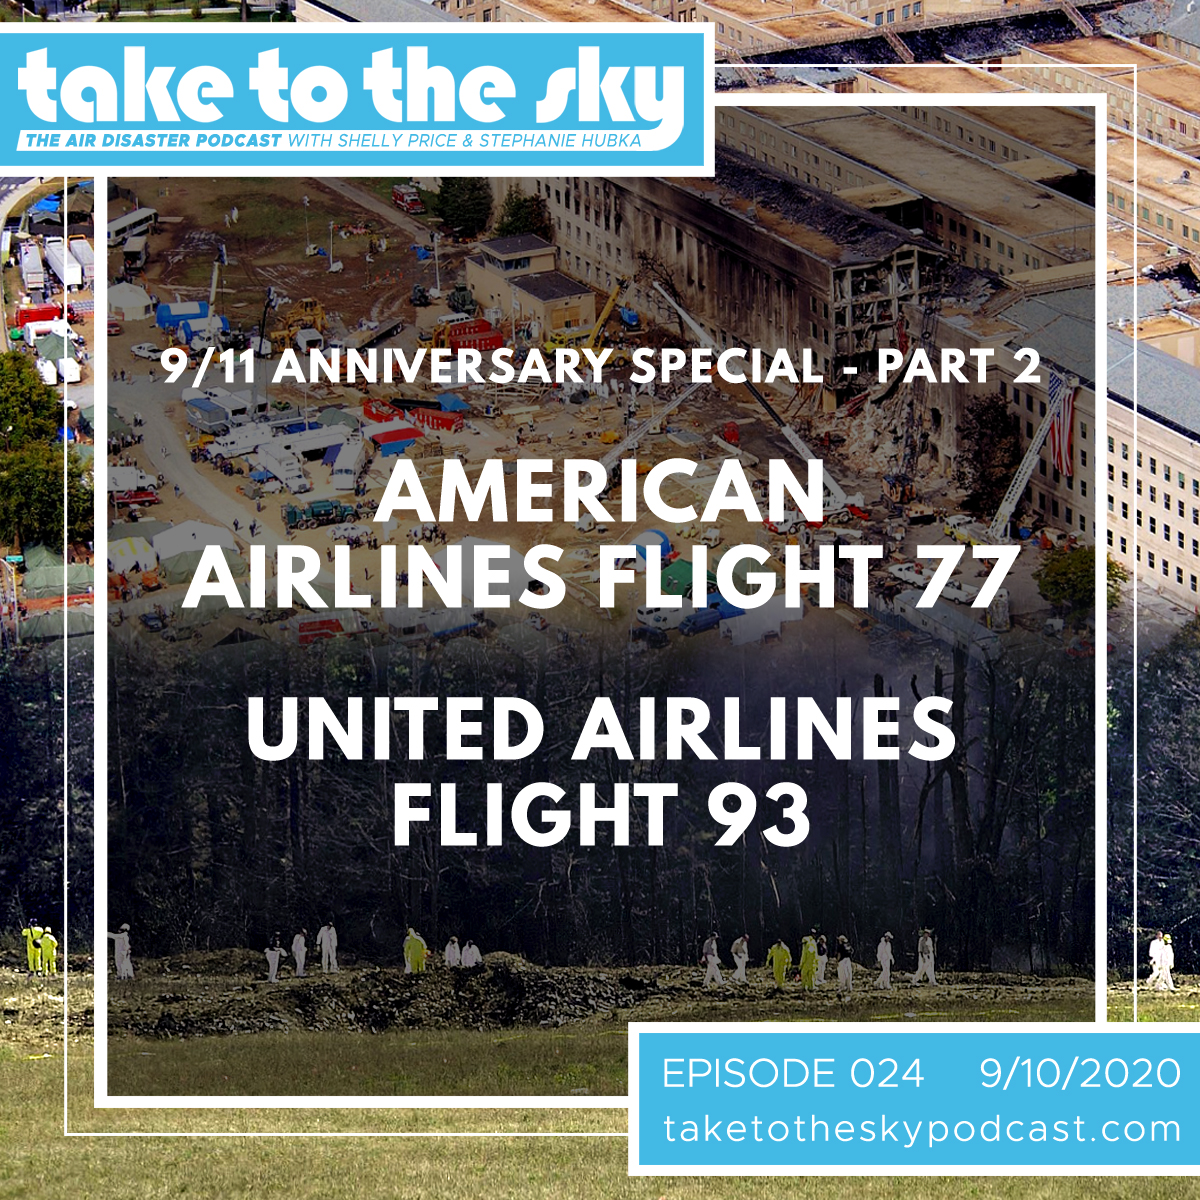 Take to the Sky Episode 024: 9/11 Anniversary Special Part 2 - American Airlines Flight 77 & United Airlines Flight 93